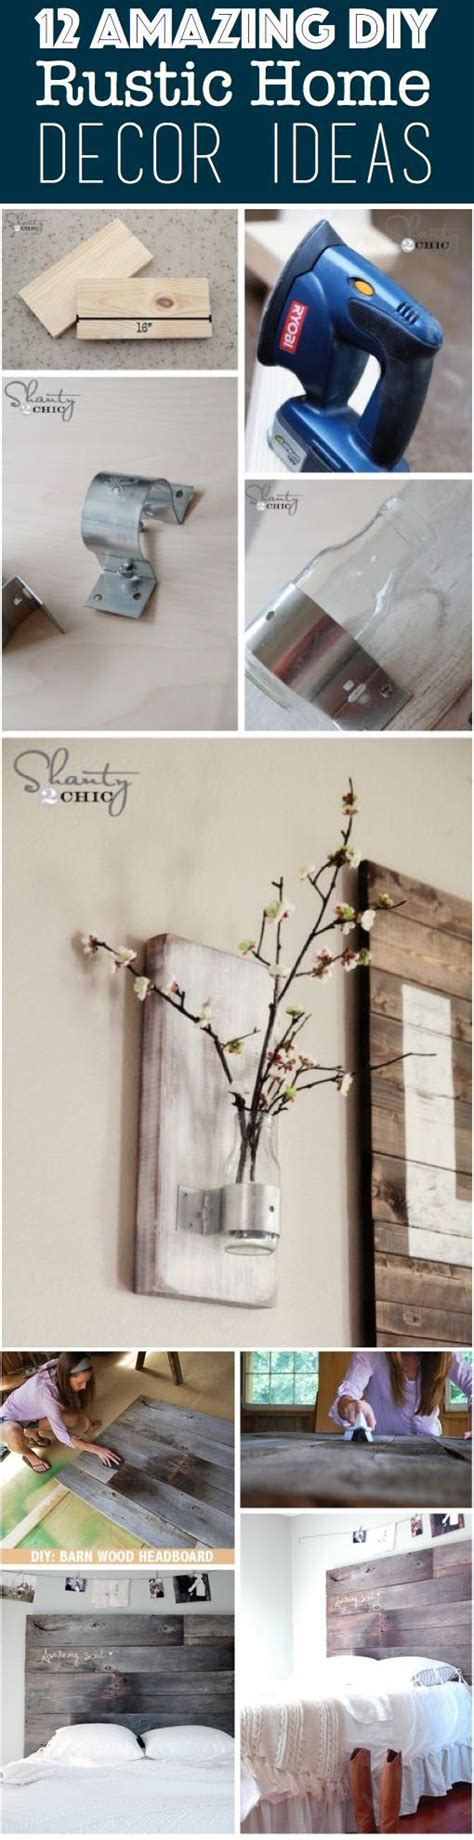 rustic home decor diy 12 amazing diy rustic home decor ideas culture scribe